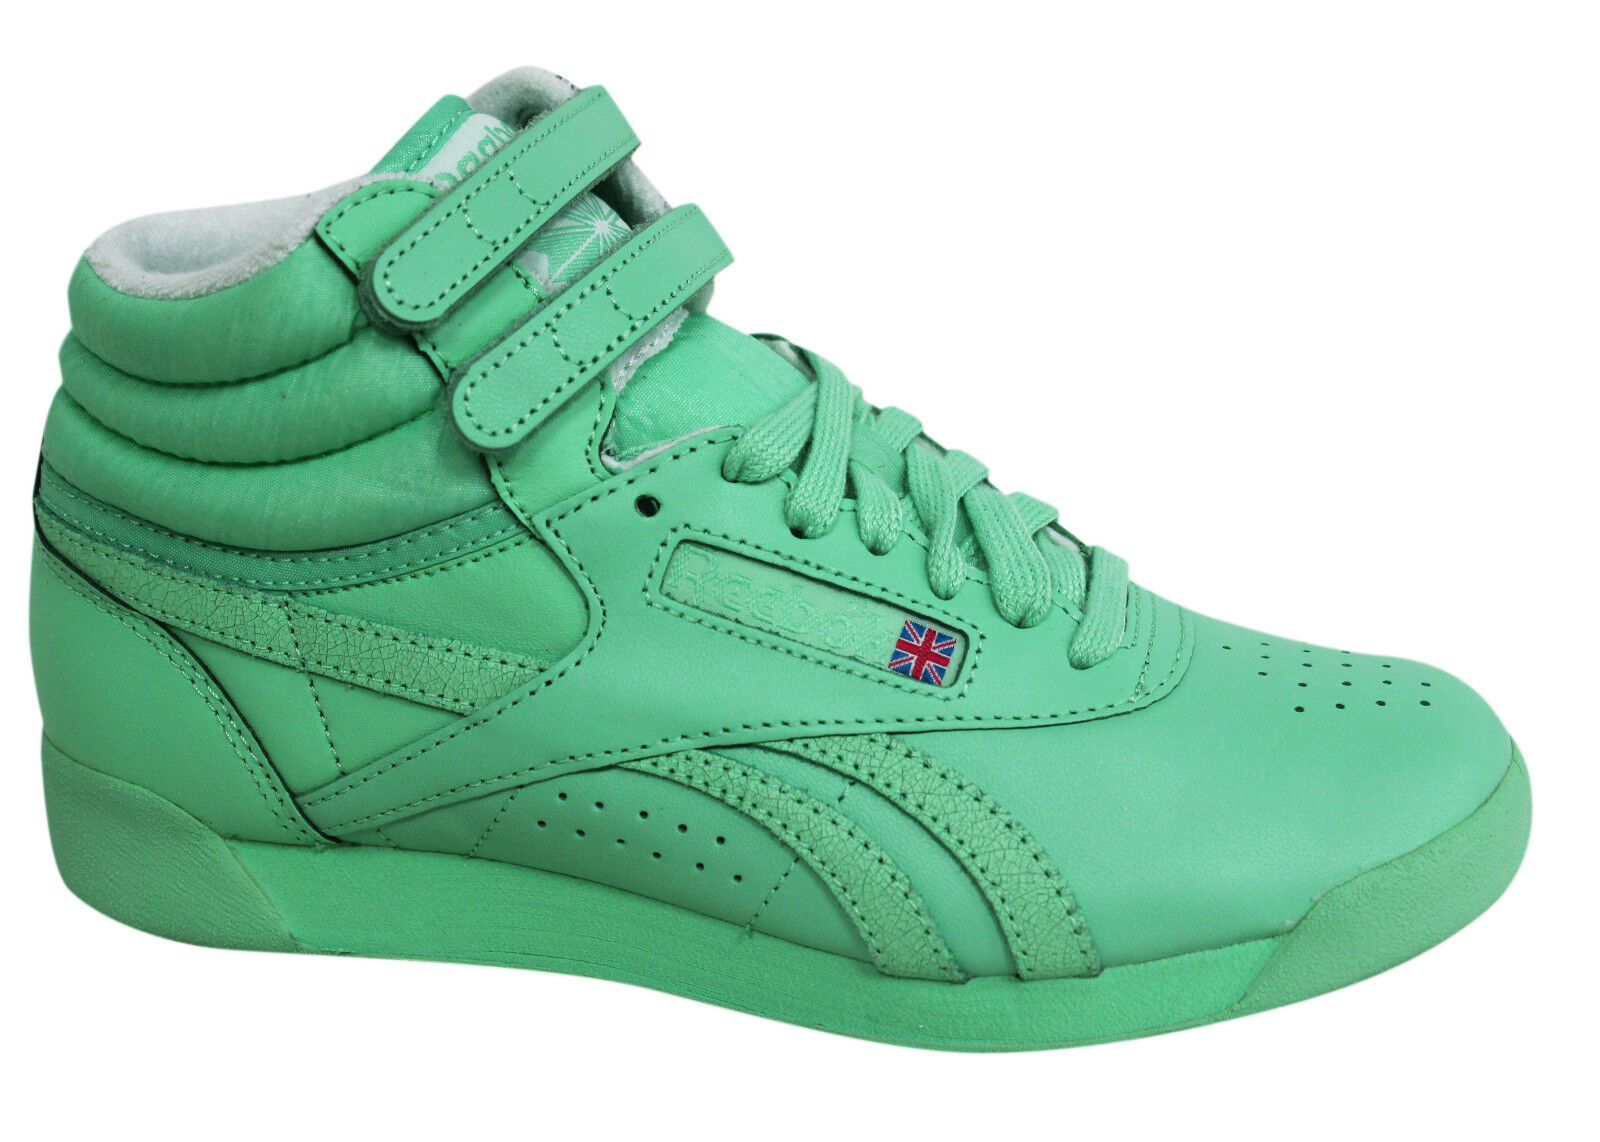 Reebok F S Classic Spirit Lace Up Mint Green Womens Hi Tops Trainers ... bcadd8531